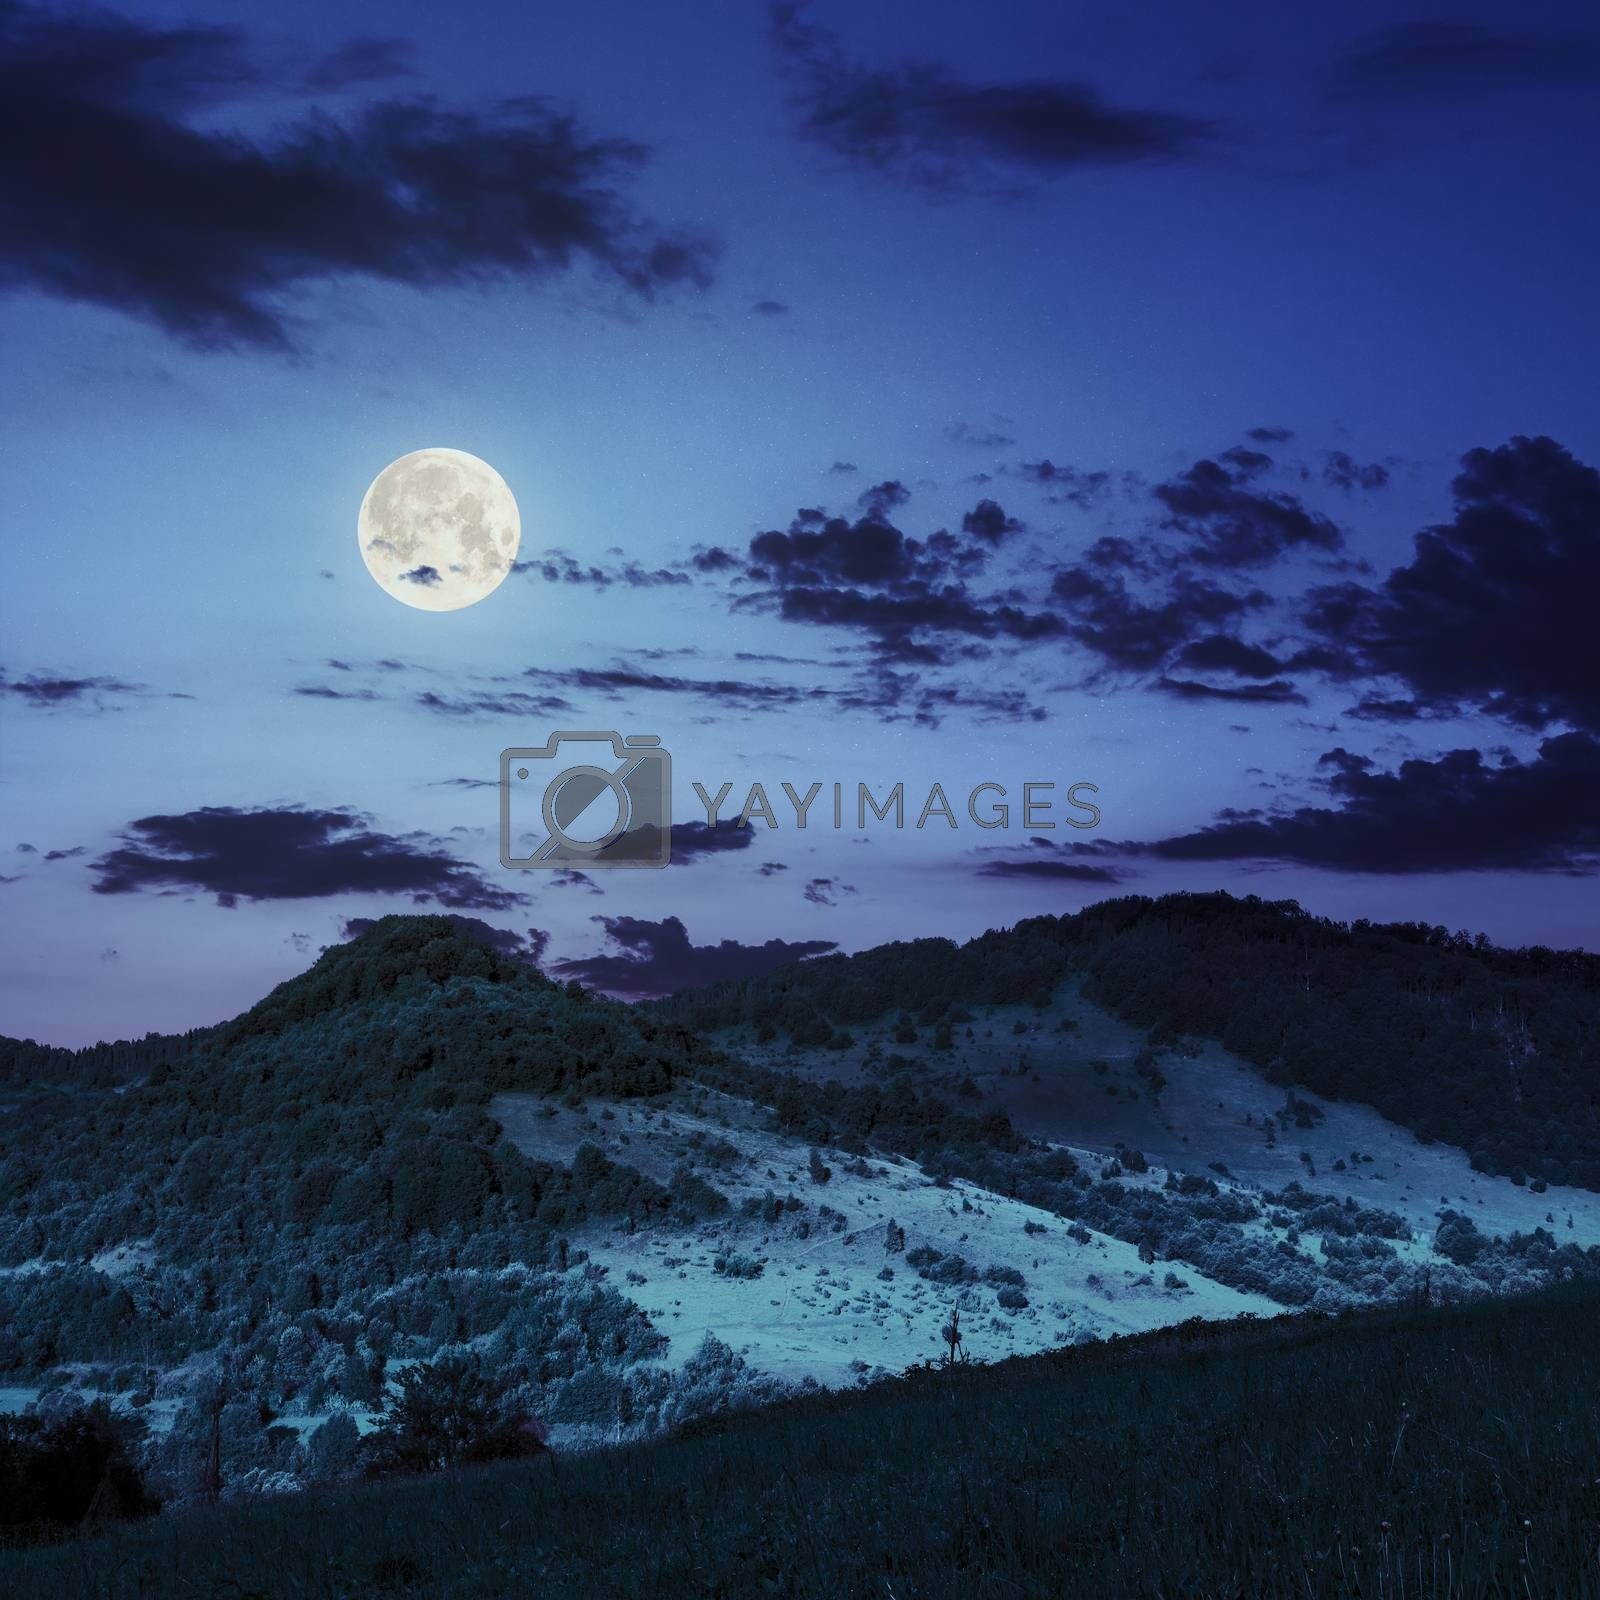 valleys on slopes in mountains at night by Pellinni